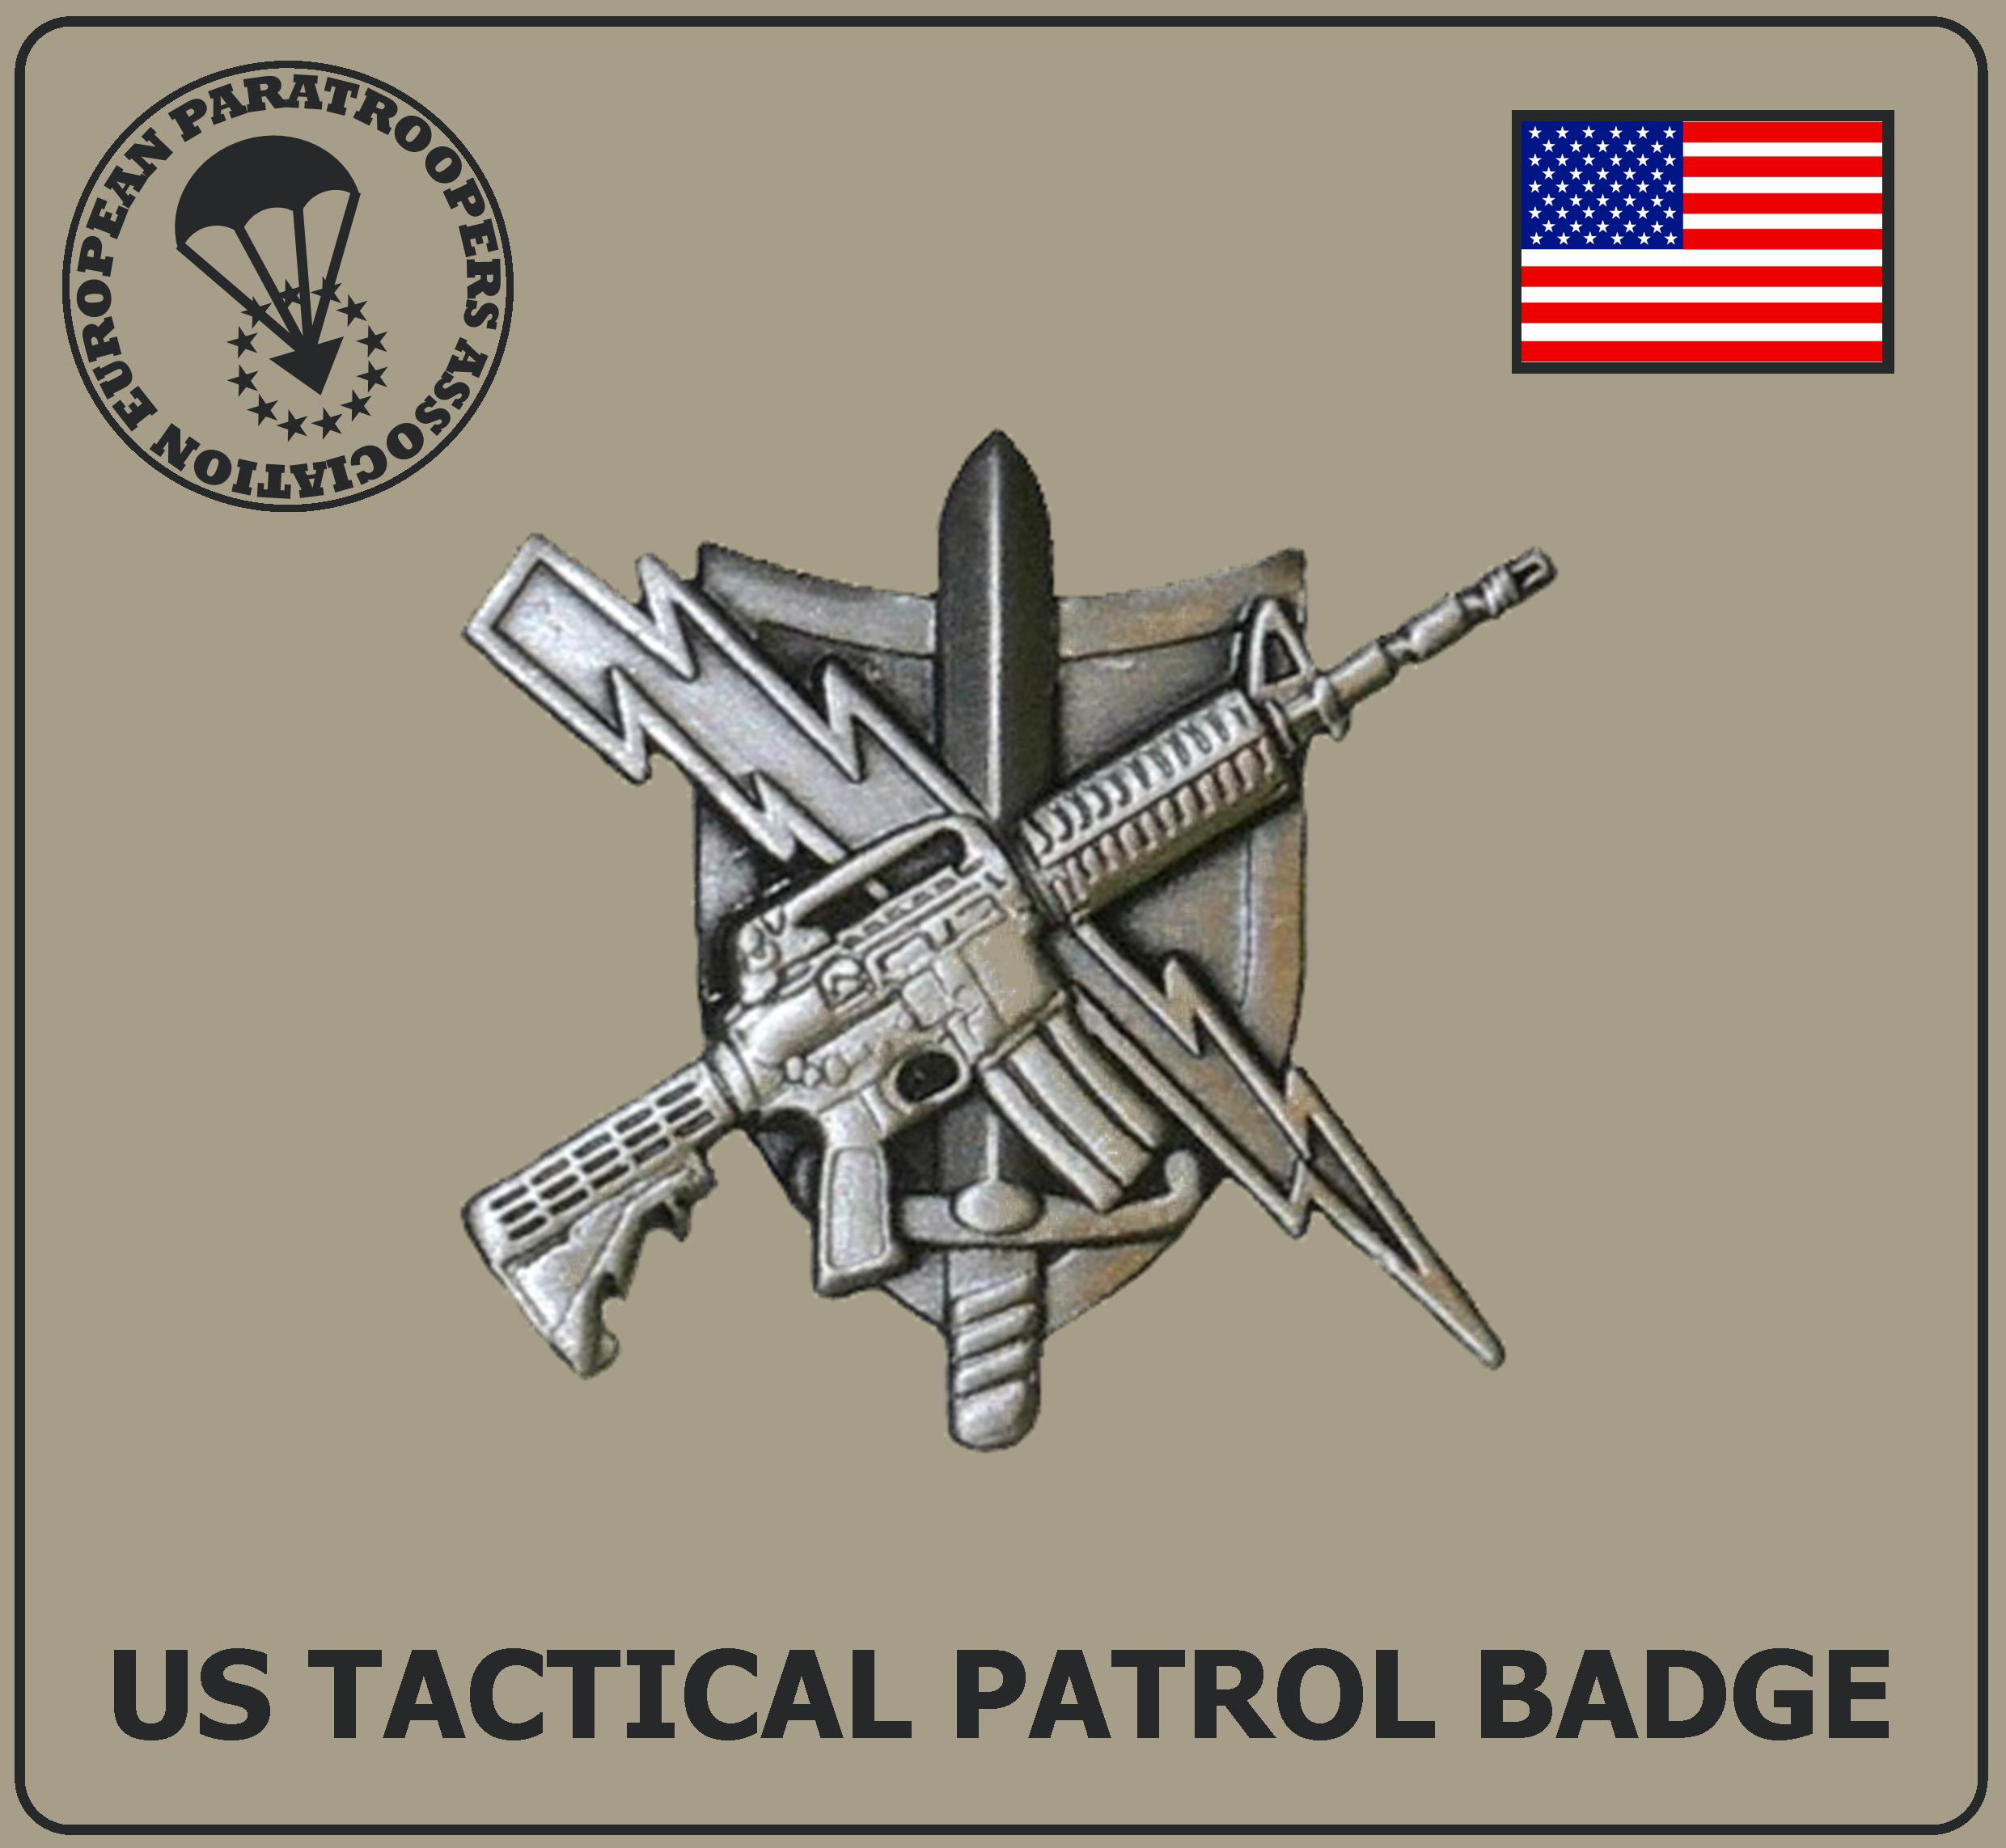 US TACTICAL PATROL BADGE